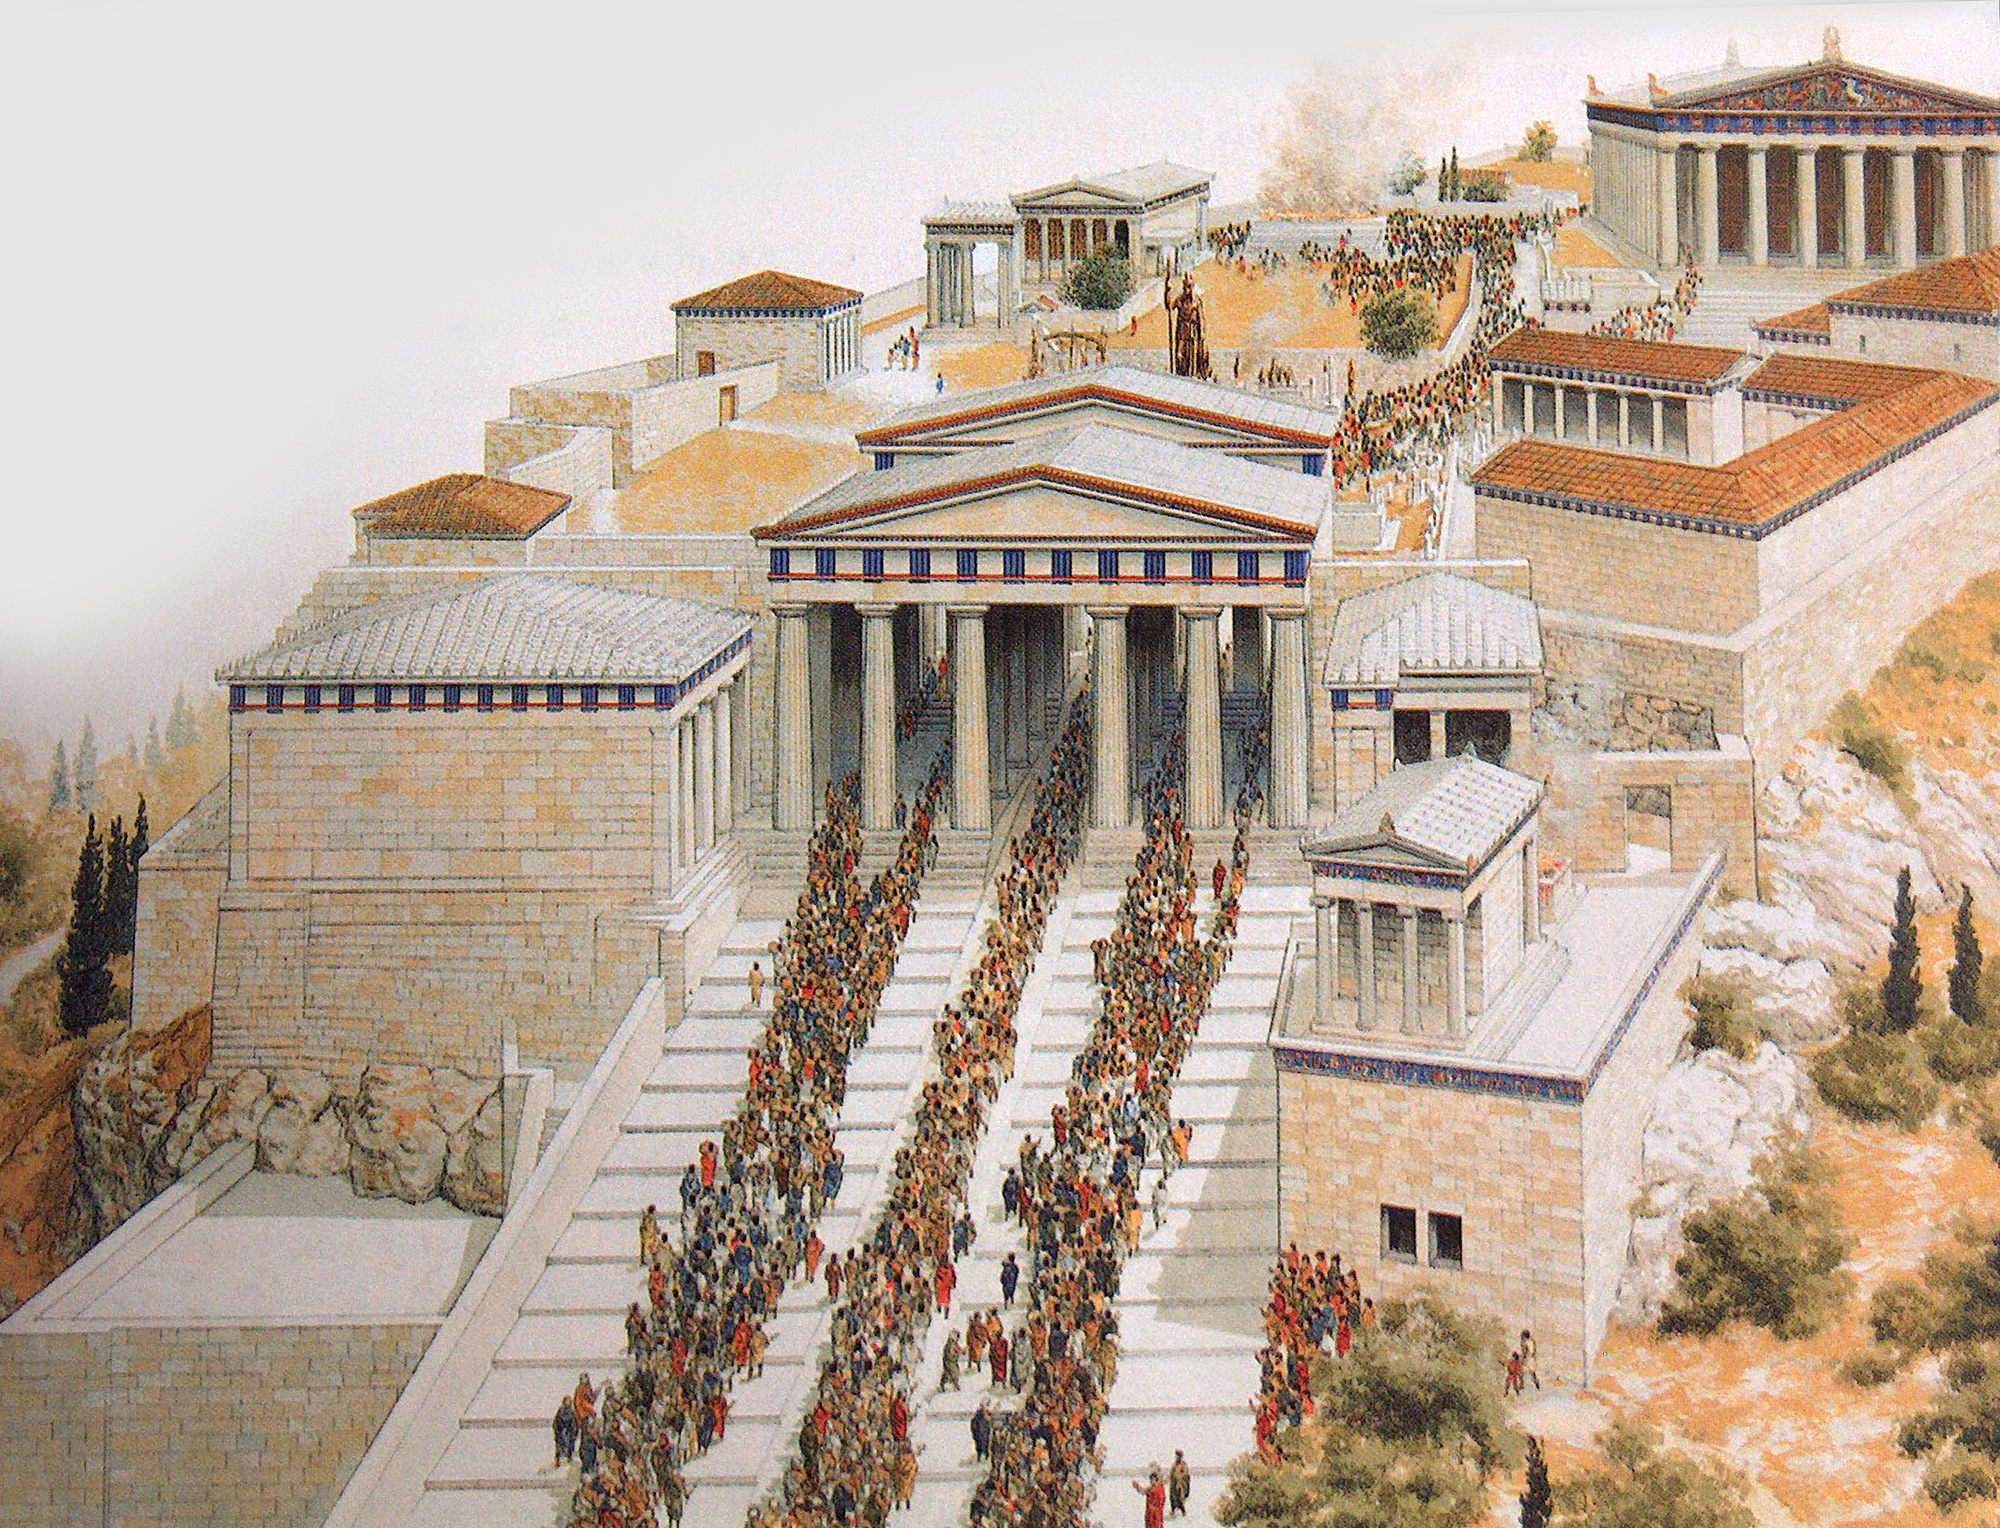 Throngs Make Their Way Up The Causeway To Acropolis In This Artistic Imagining Of